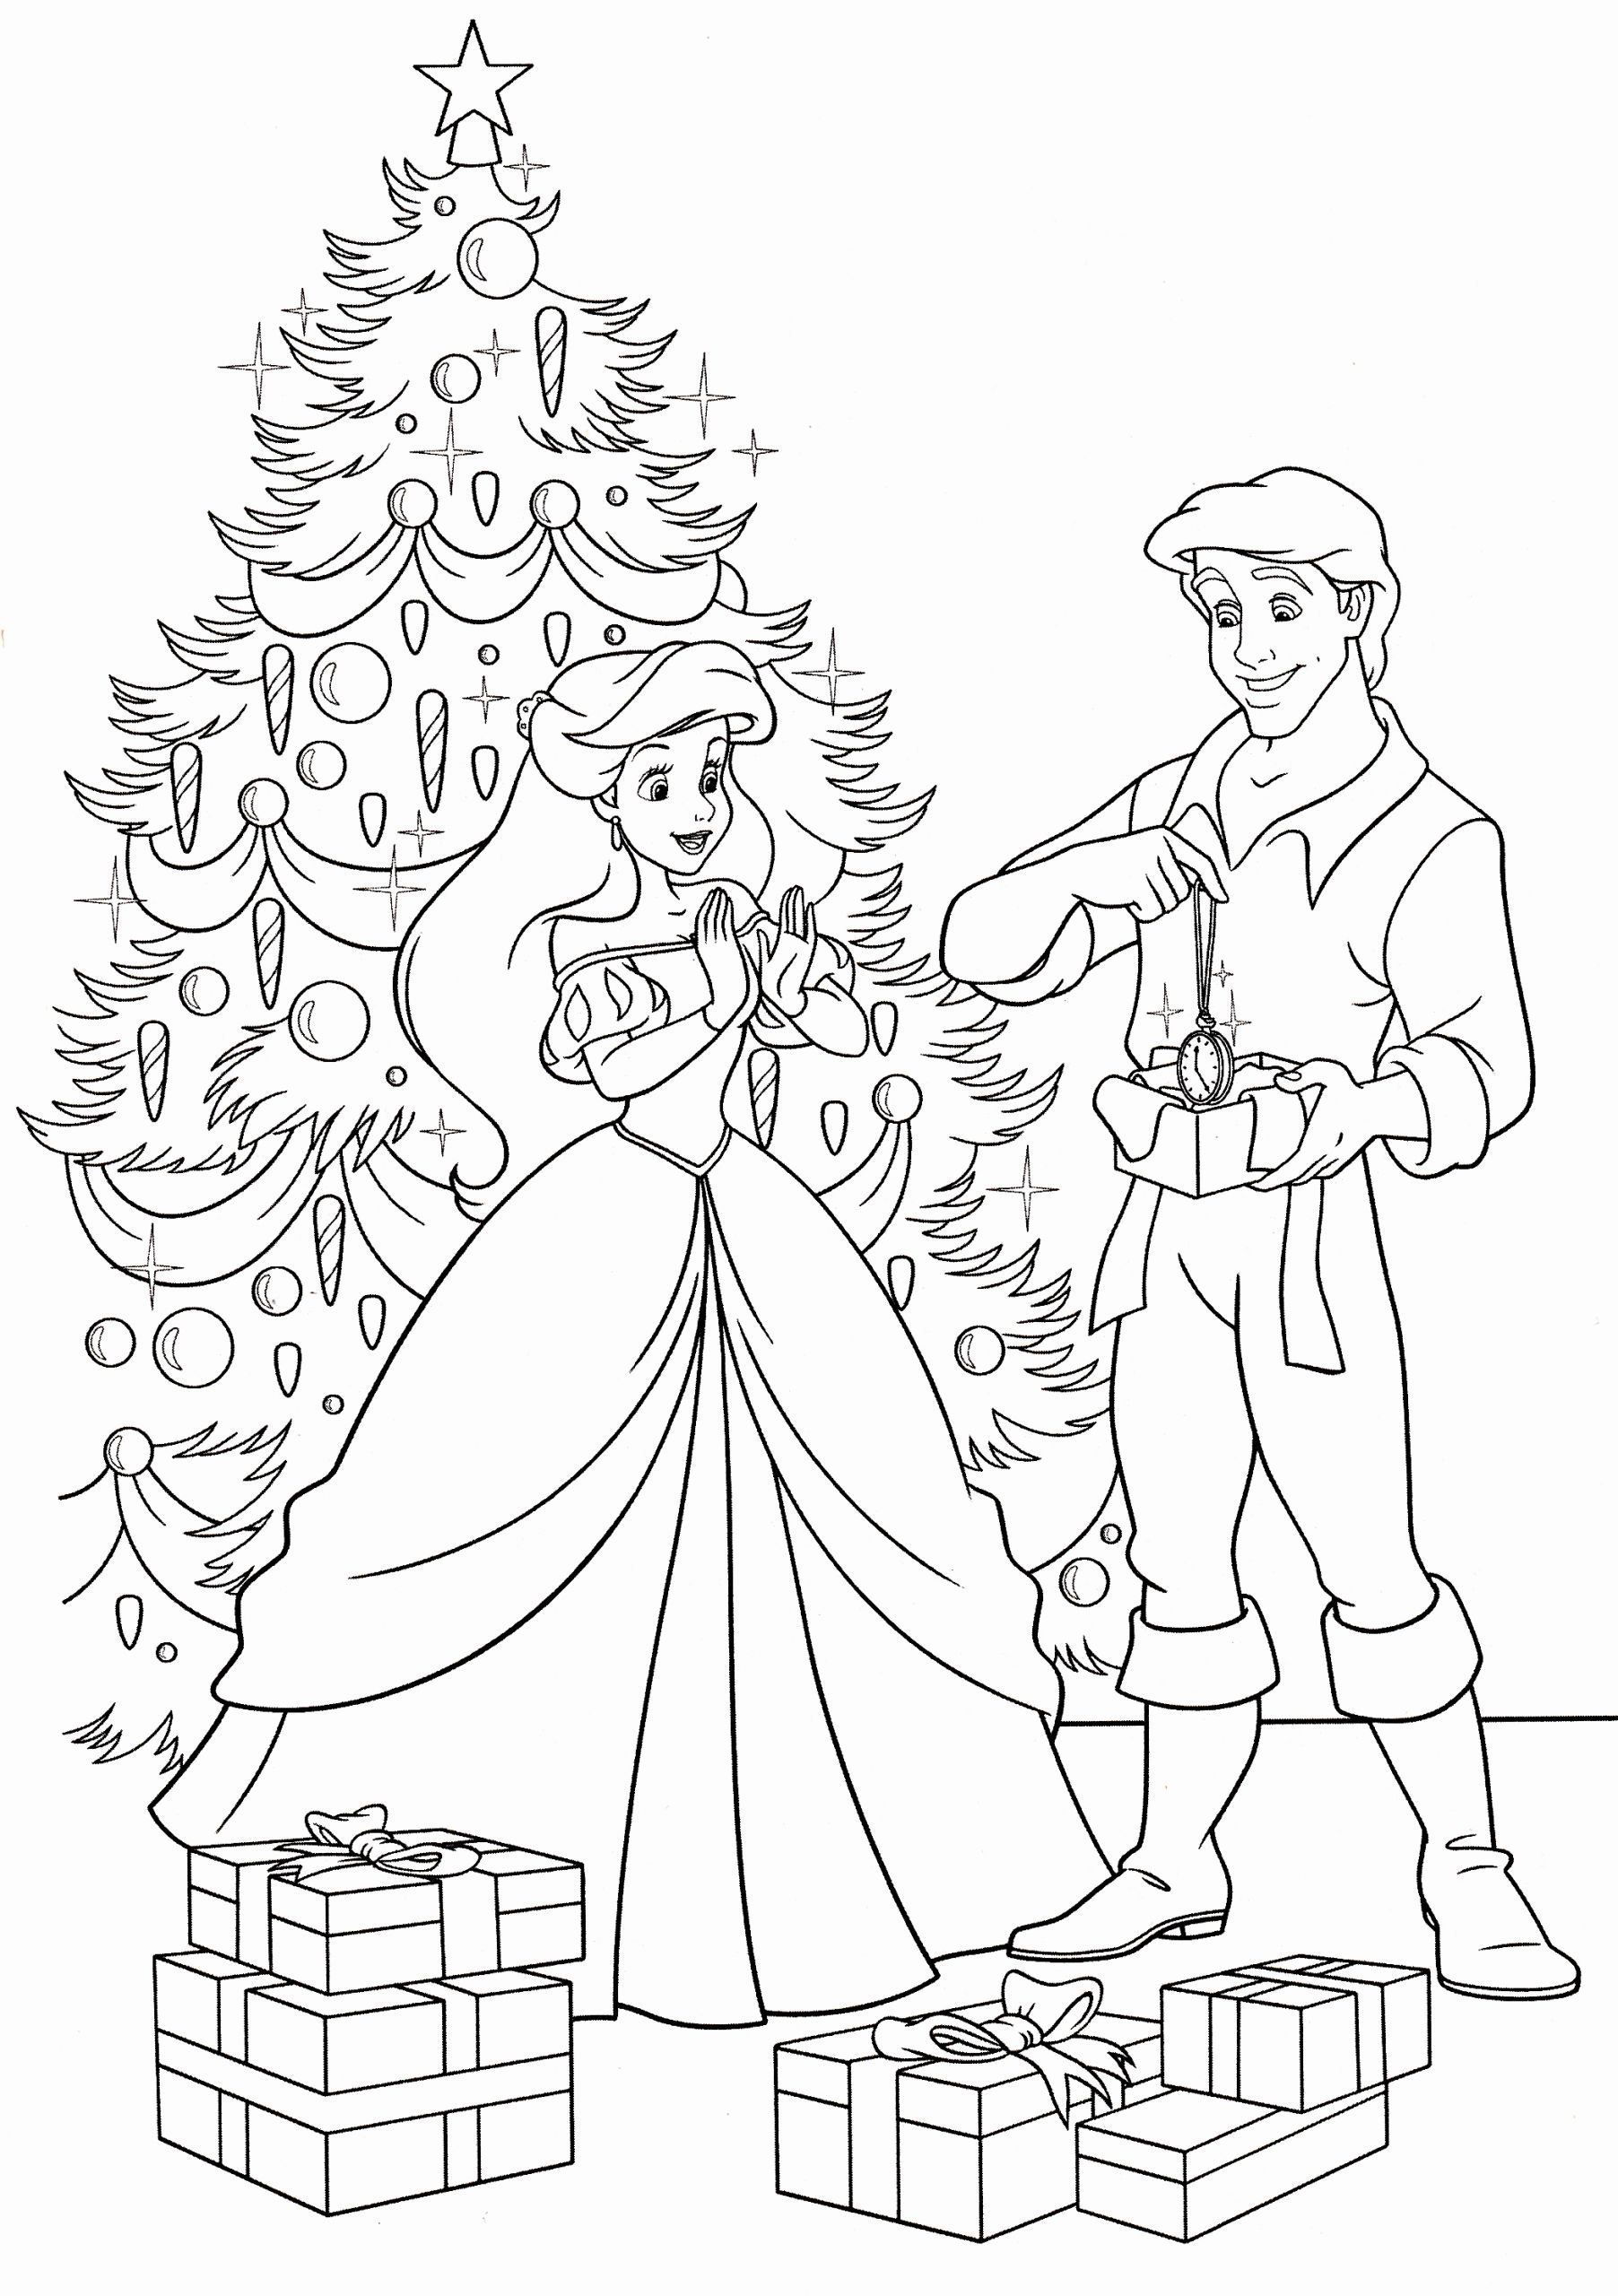 Walt Disney Christmas Coloring Pages Lovely Walt Disney Coloring Pages Princess A Mermaid Coloring Pages Disney Princess Coloring Pages Princess Coloring Pages